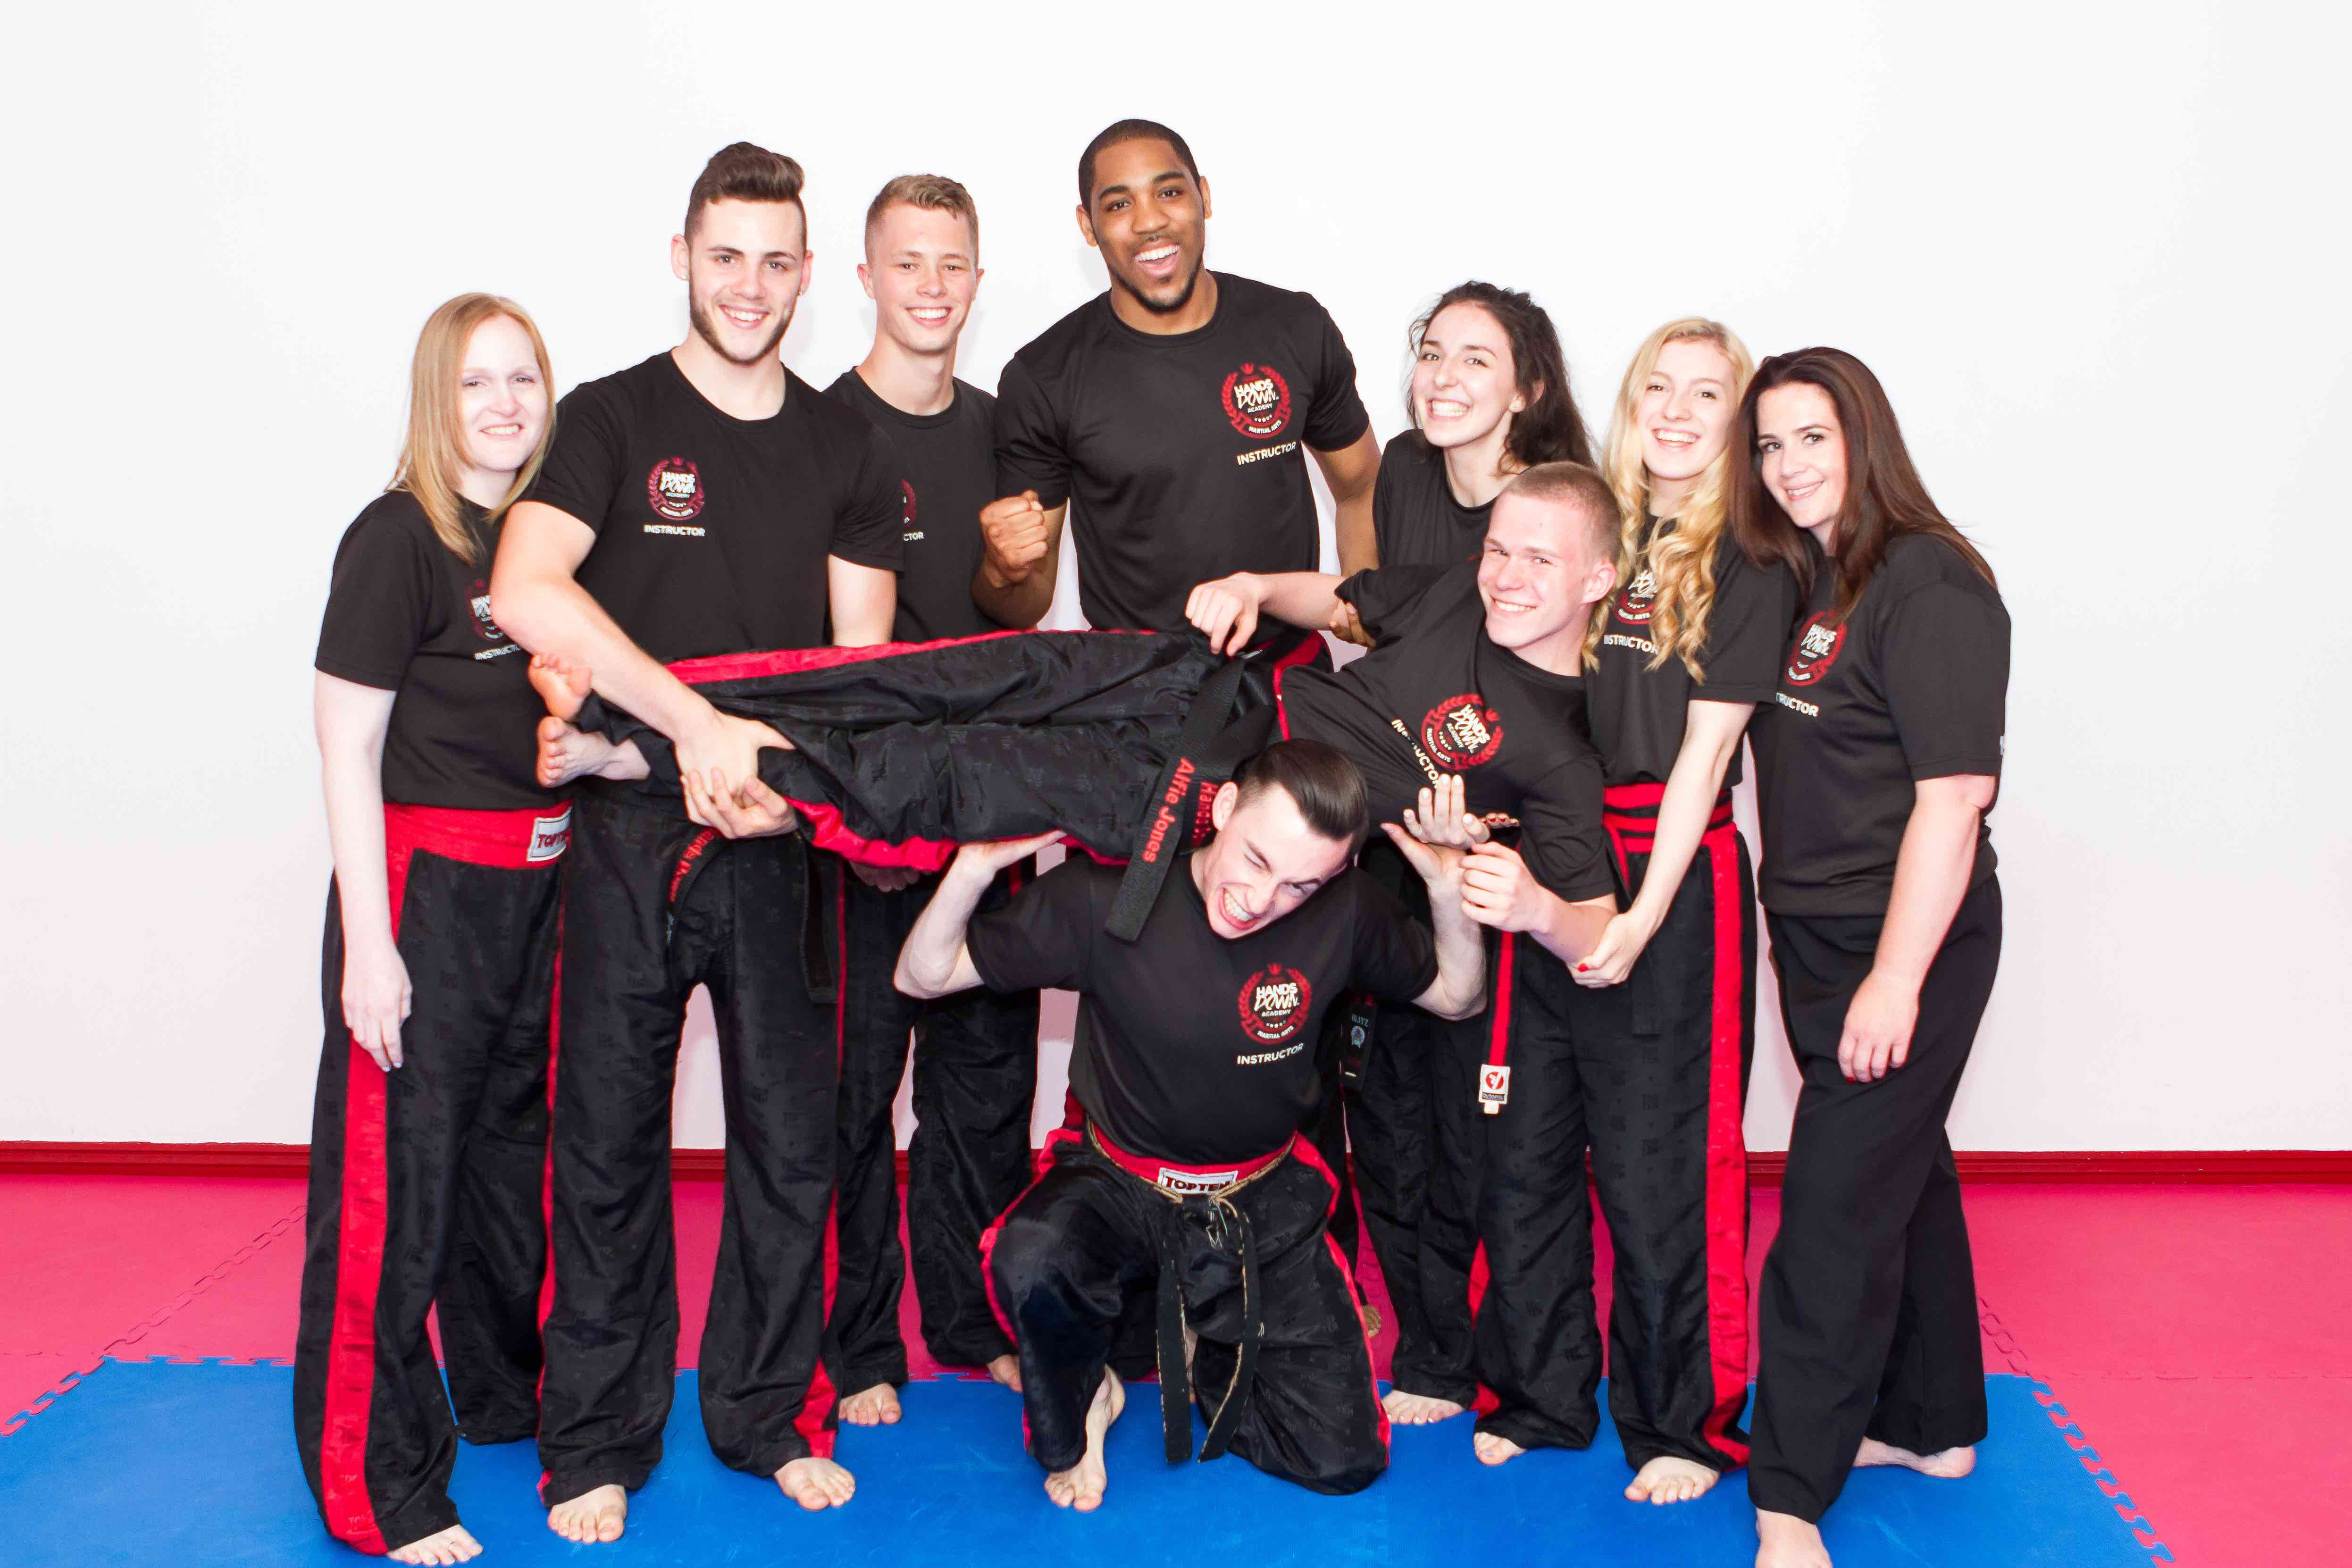 Martial Arts Academy in Cobham and Epsom, Surrey UK